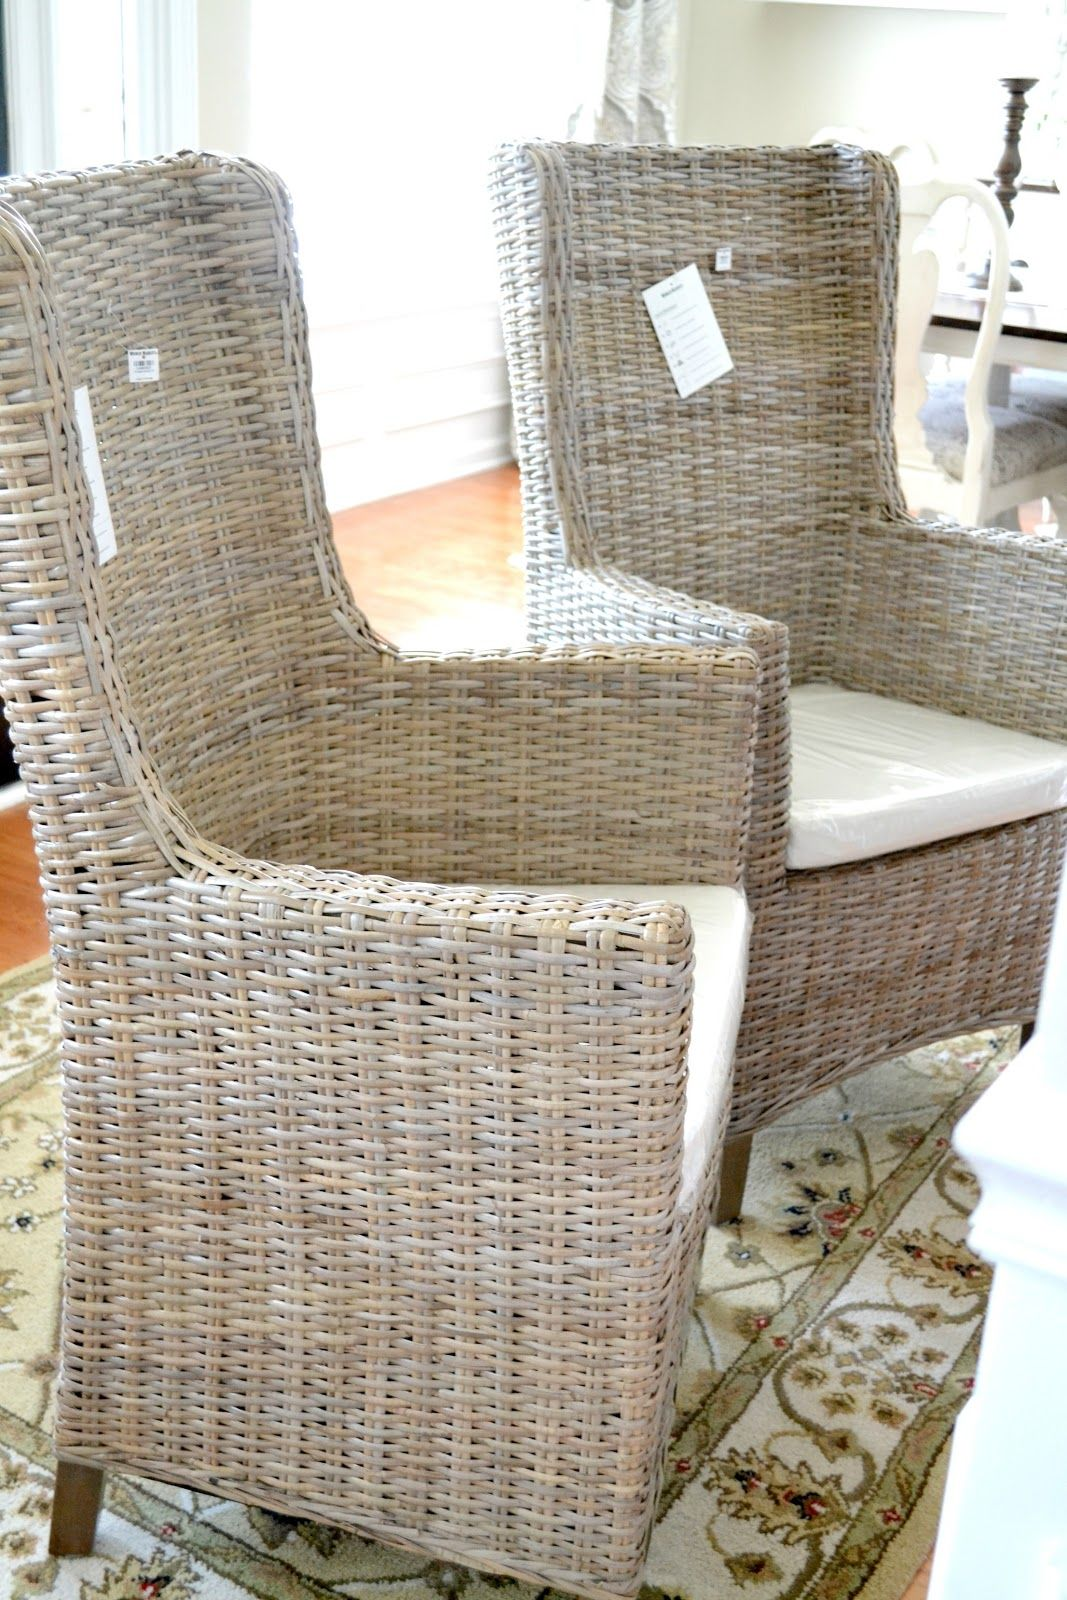 Wicker Outdoor Dining Chairs World Market Wicker Chairs For The Head Of The Dining Tables